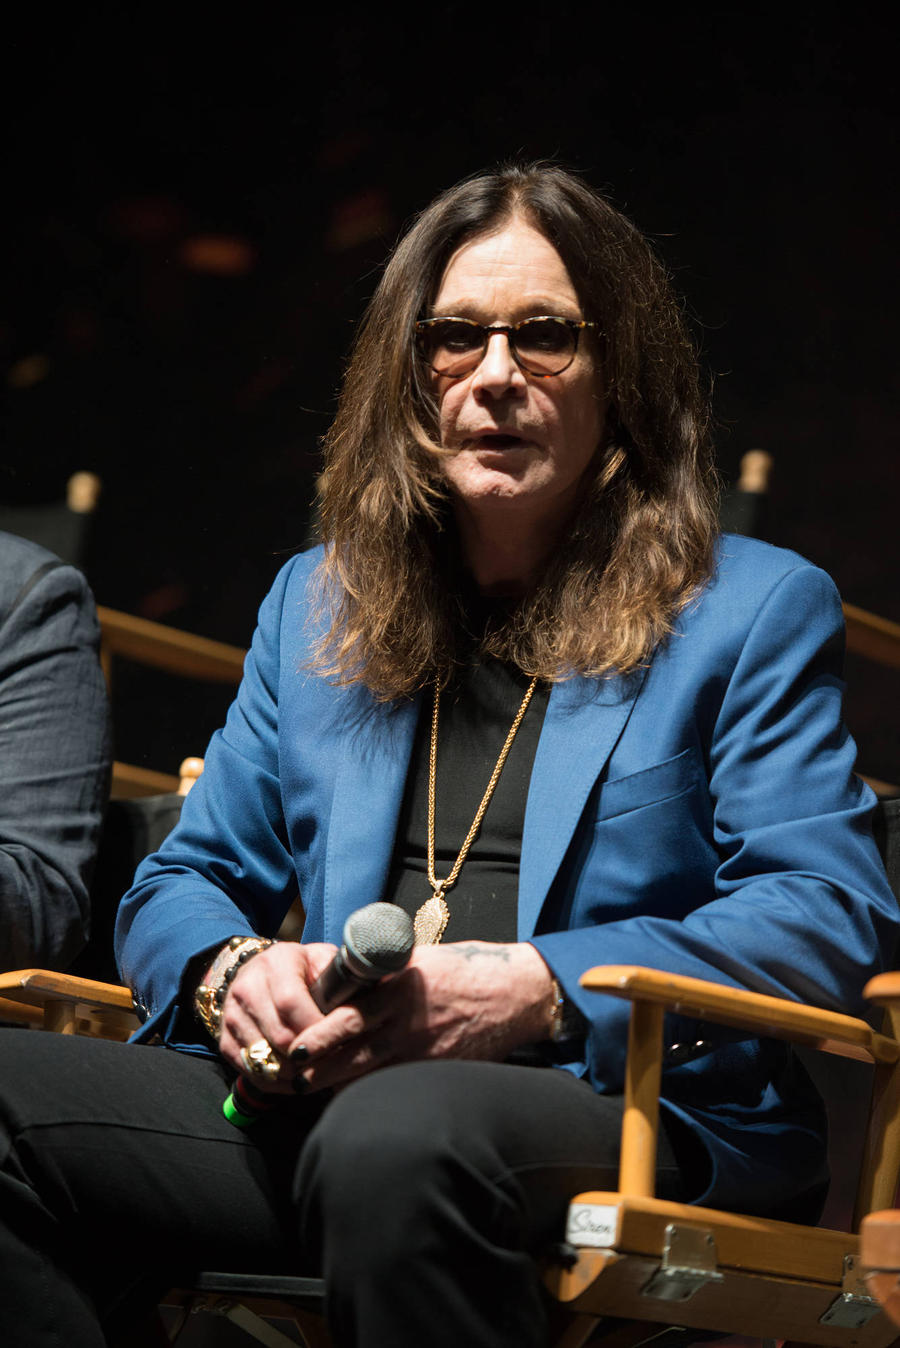 Ozzy Osbourne's Old Songwriter Pal Isn't Backing Down In Royalties War